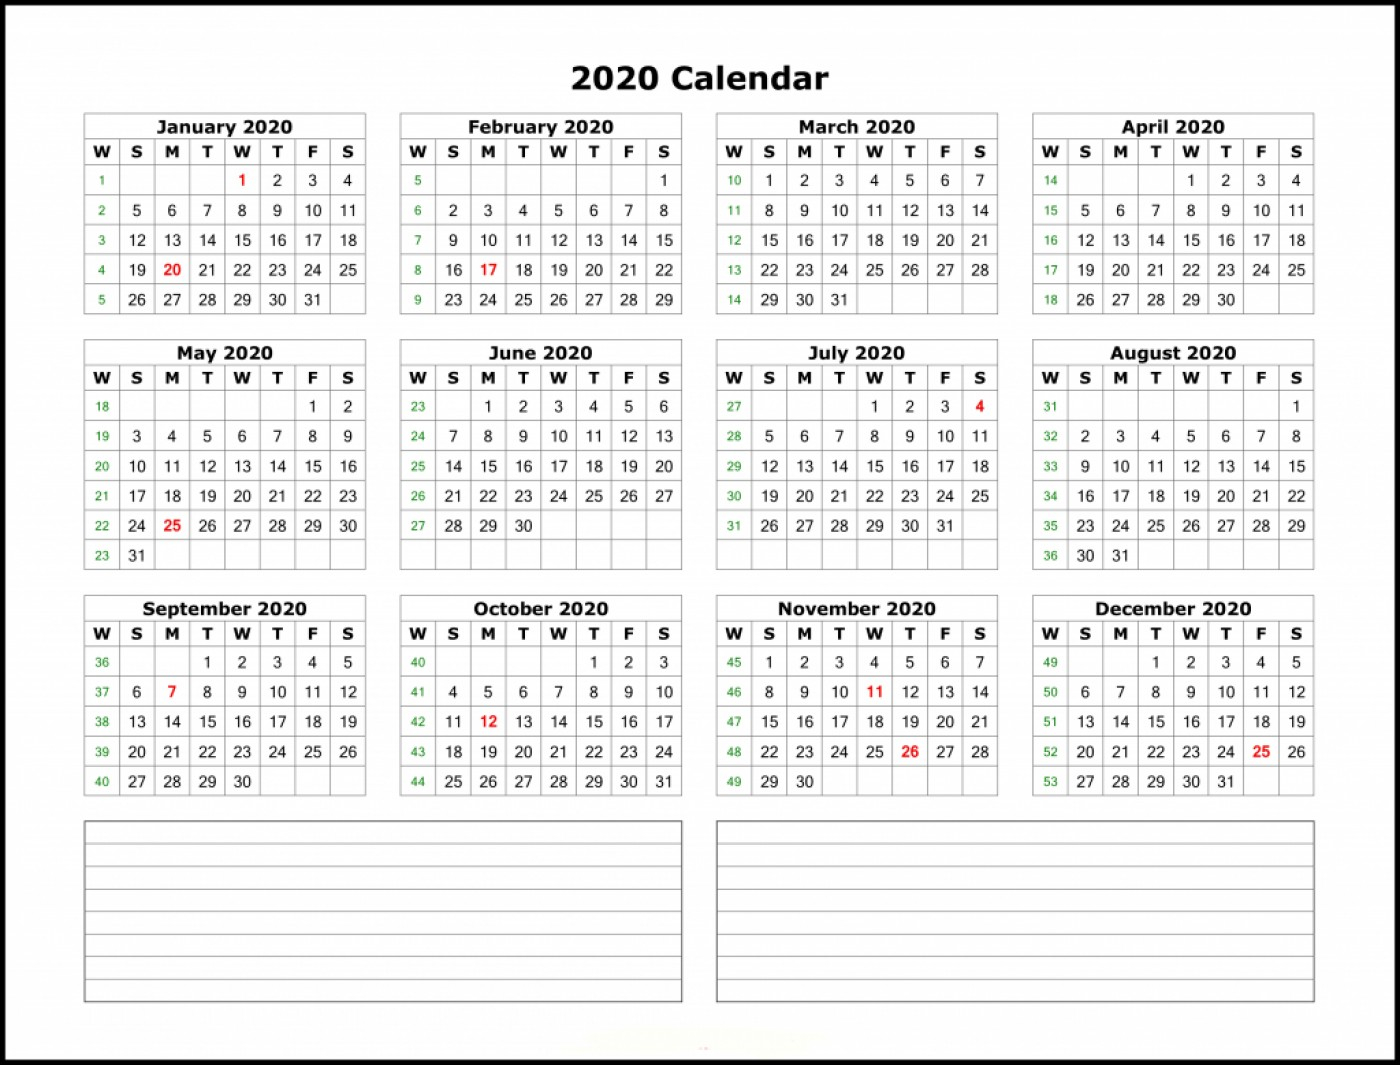 008 Calendar Templates Word Weekly Template June Free